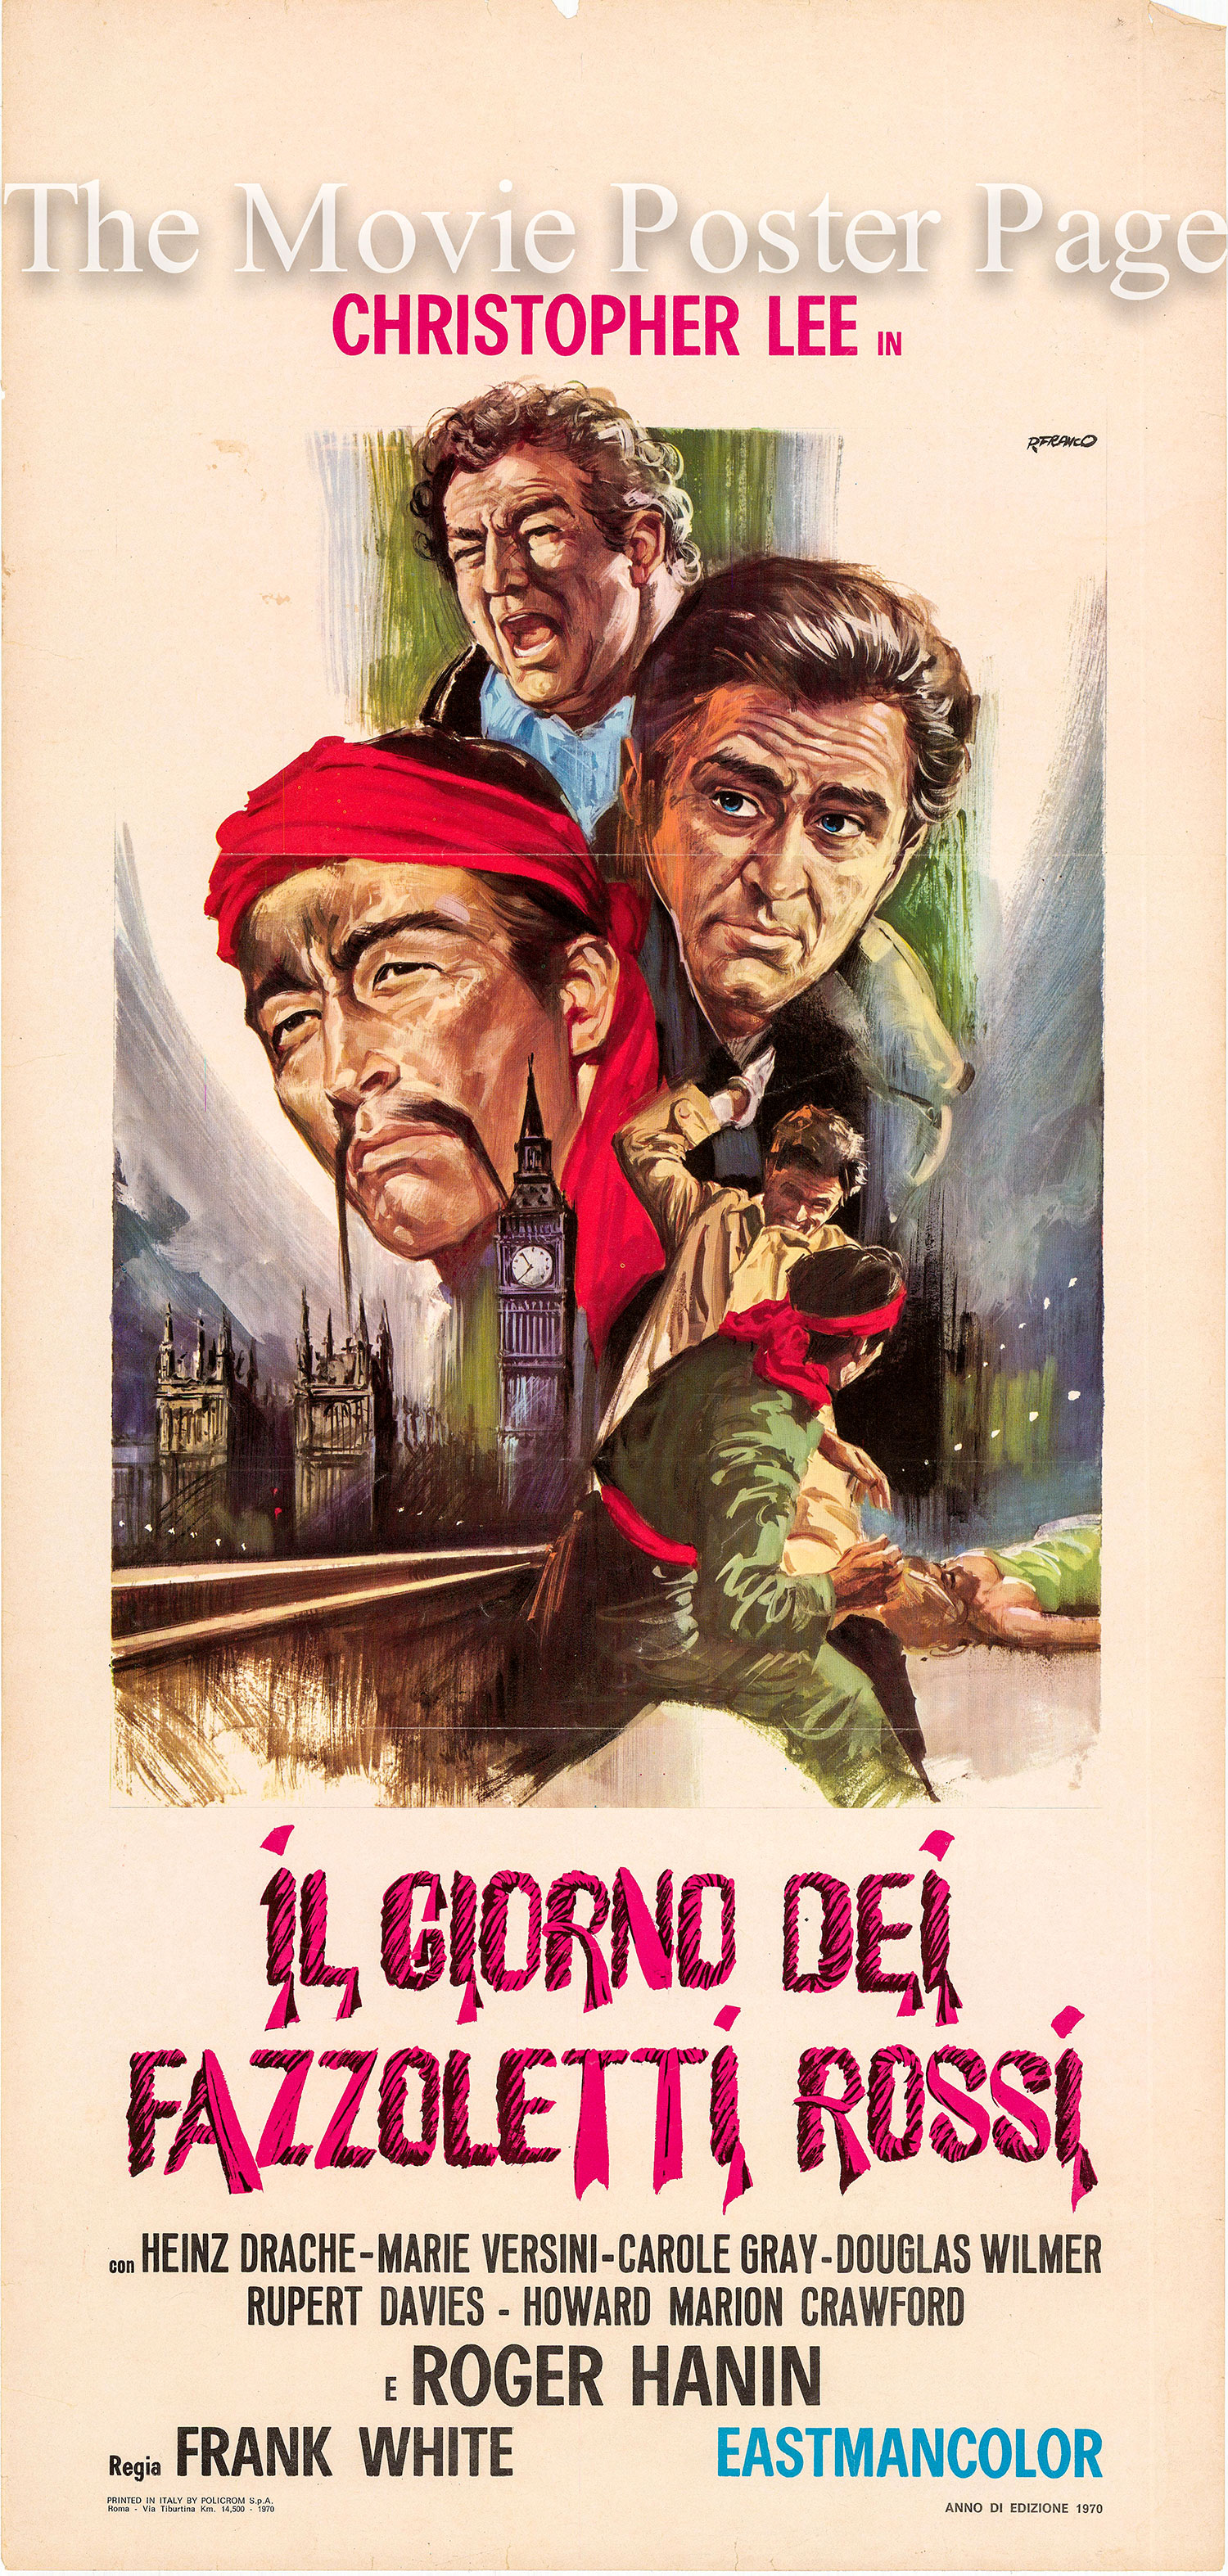 Pictured is an Italian locandina poster for the 1966 Don Sharp film The Brides of Fu Manchu starring Christopher Lee as Fu Manchu.